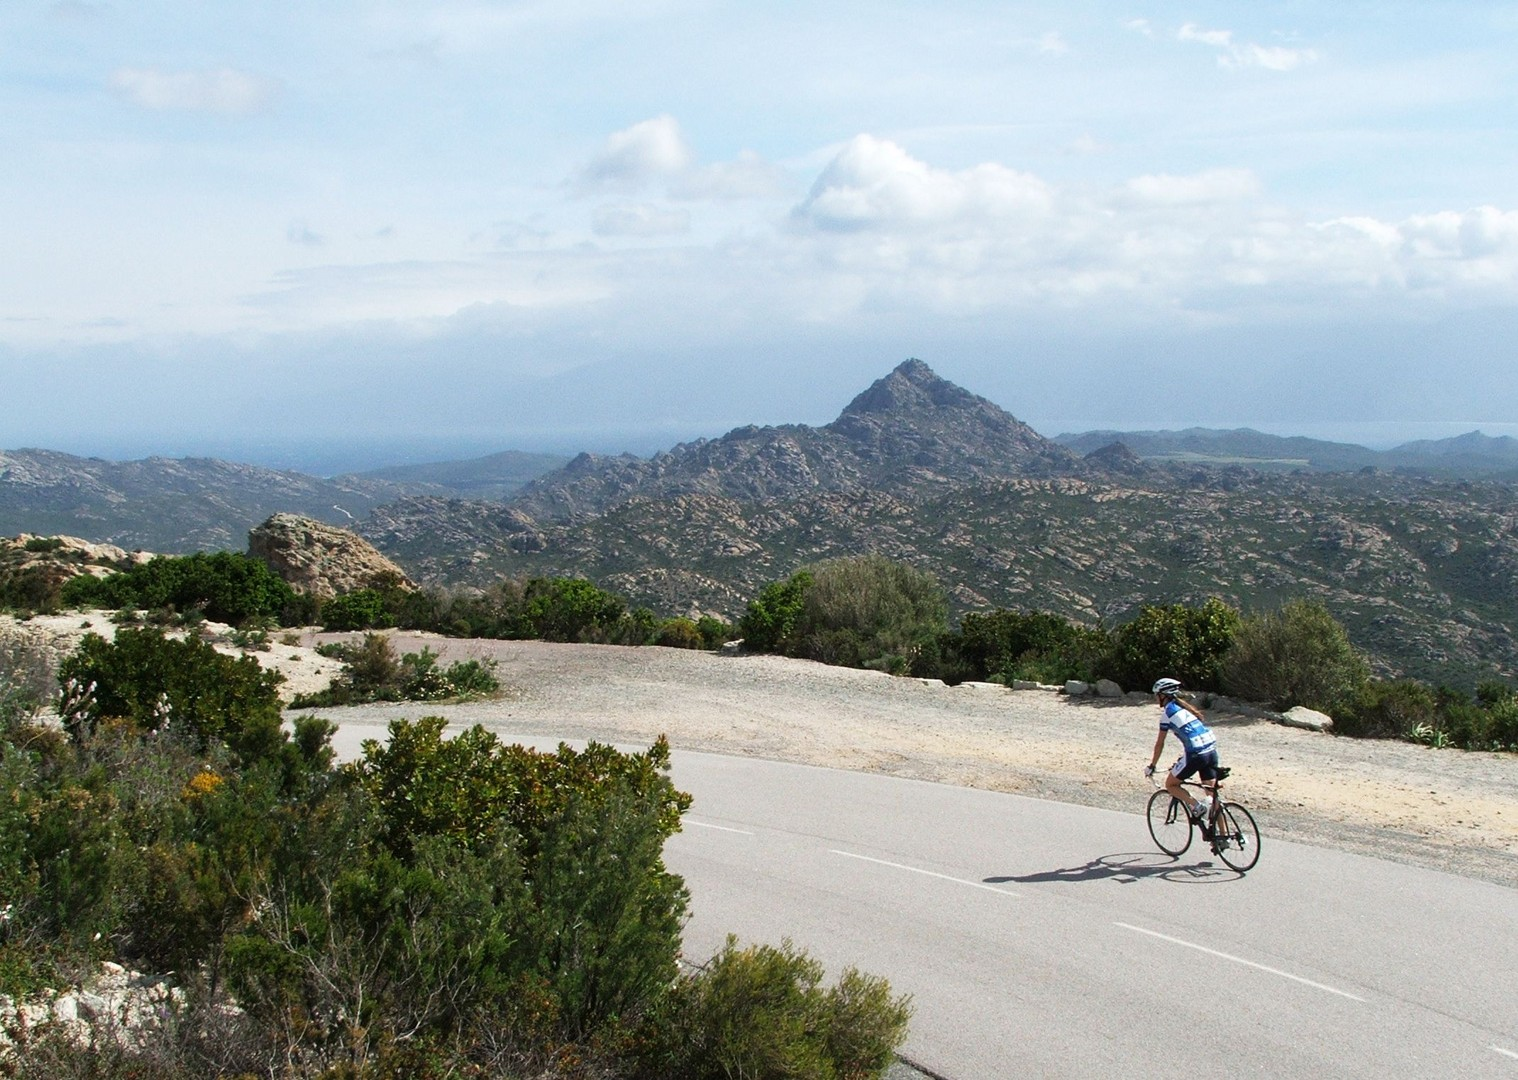 calvi-guided-road-cycling-holiday-the-beautiful-isle-france-corsica.jpg - France - Corsica - The Beautiful Isle - Road Cycling